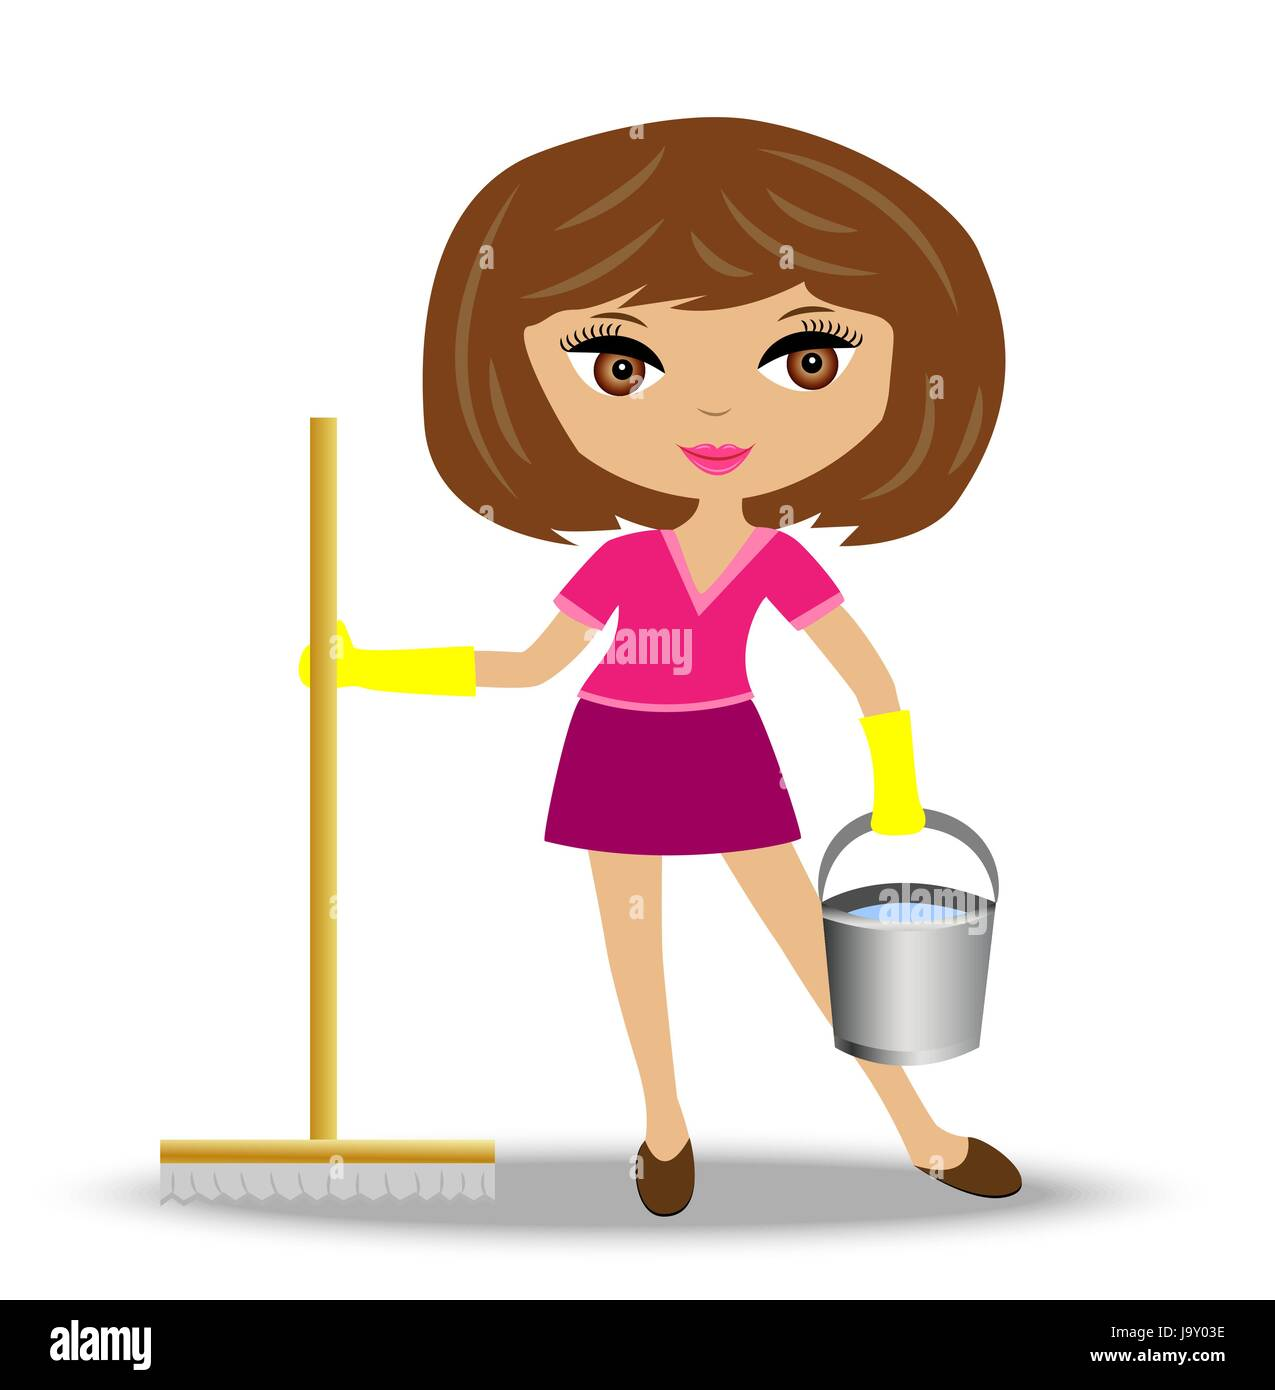 young woman  with mop and bucket in hand, vector illustration - Stock Vector